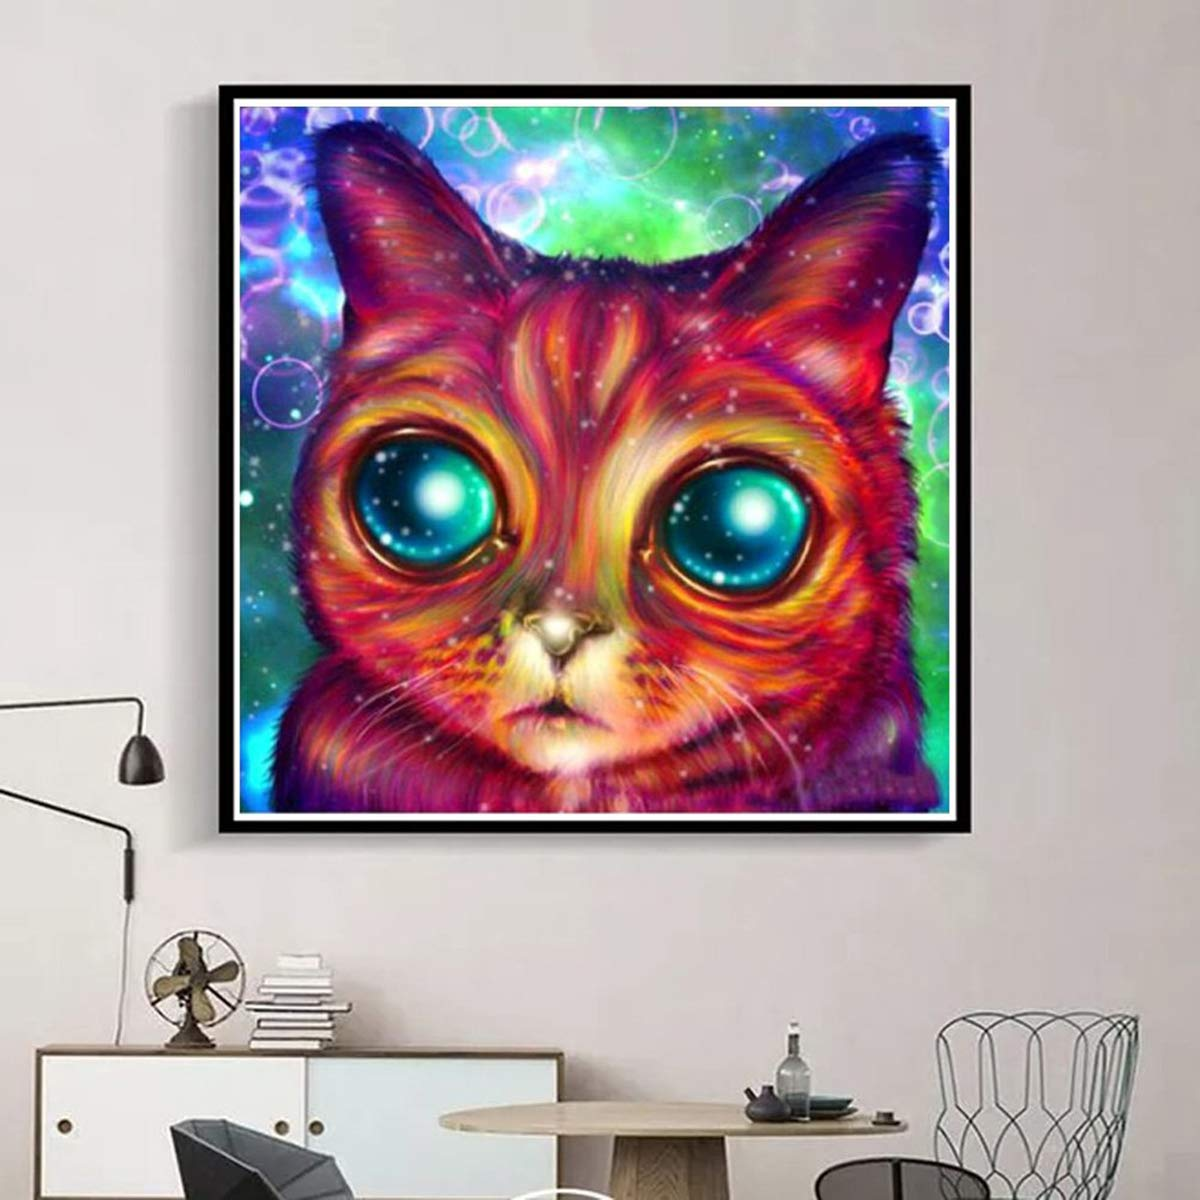 Big-Eyed Cat Animal Rhinestone Embroidery Cross Stitch Pictures Arts Craft Home Wall Decor 11.8x11.8 inch DIY 5D Diamond Painting Kits for Adults Full Drill